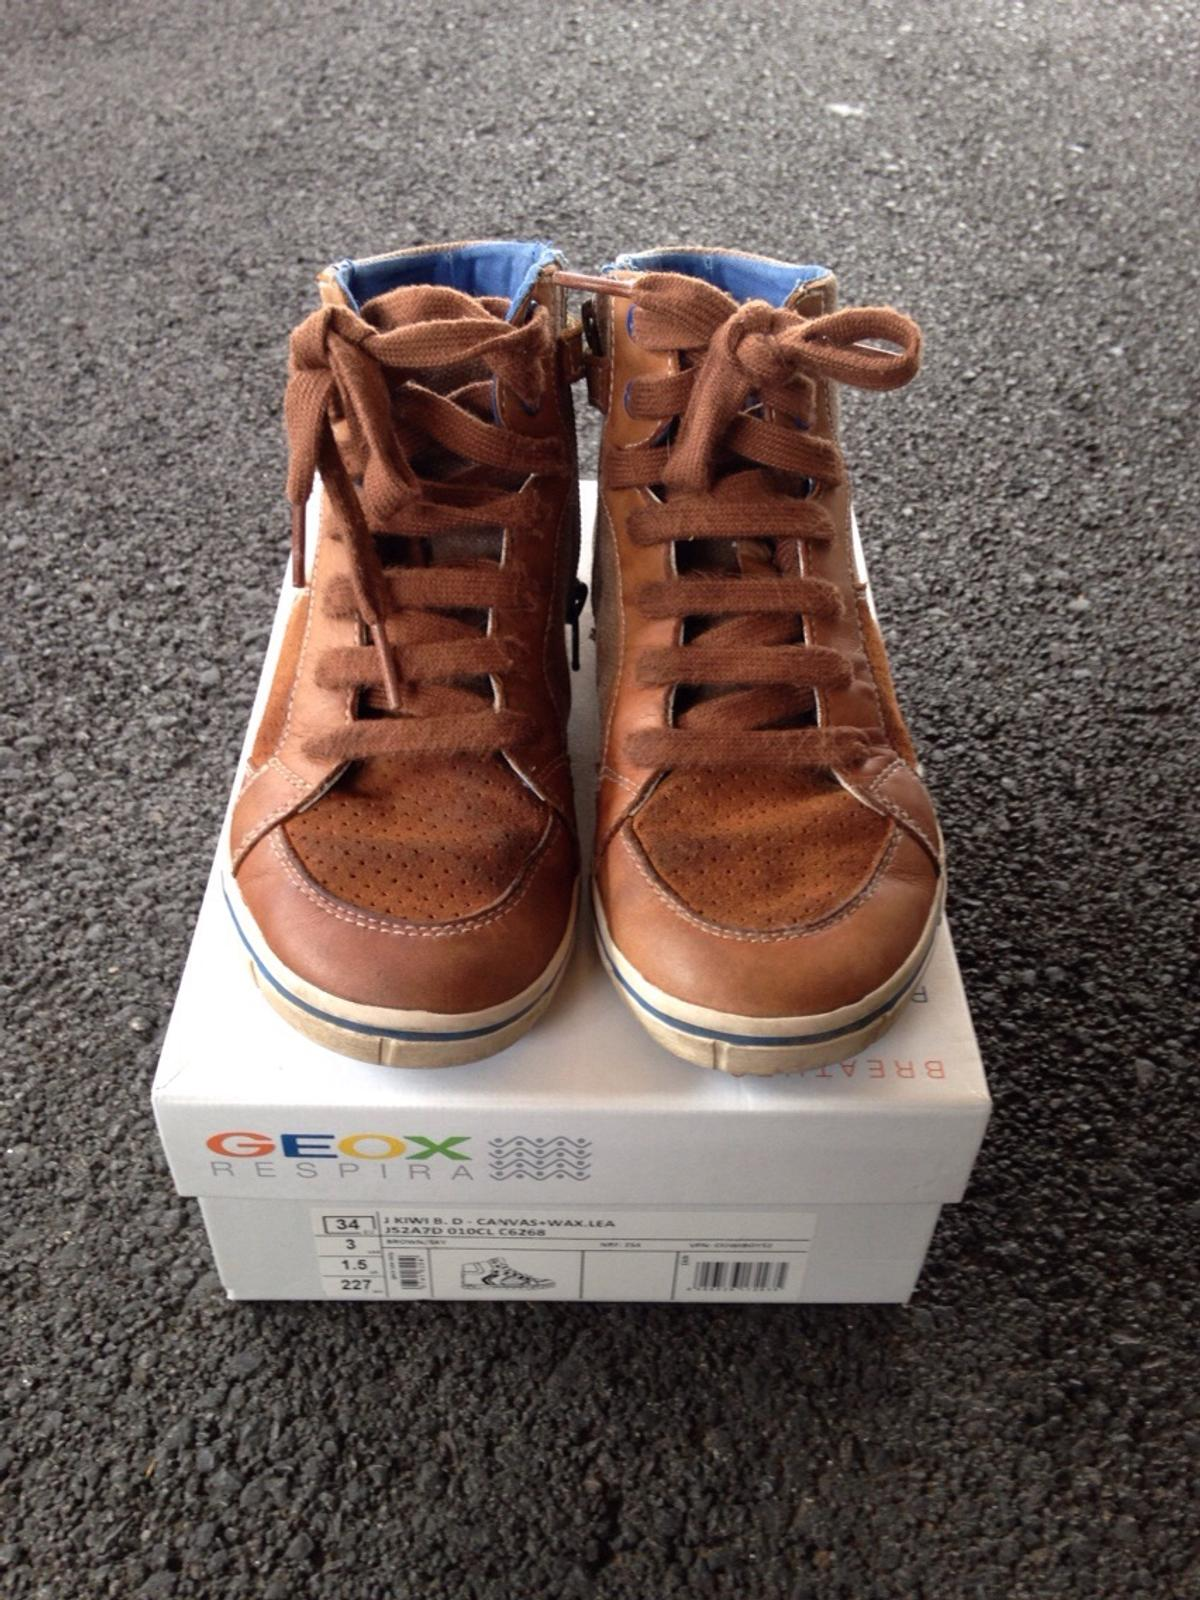 competitive price 1e784 fce04 Geox Herbstschuhe Gr.34